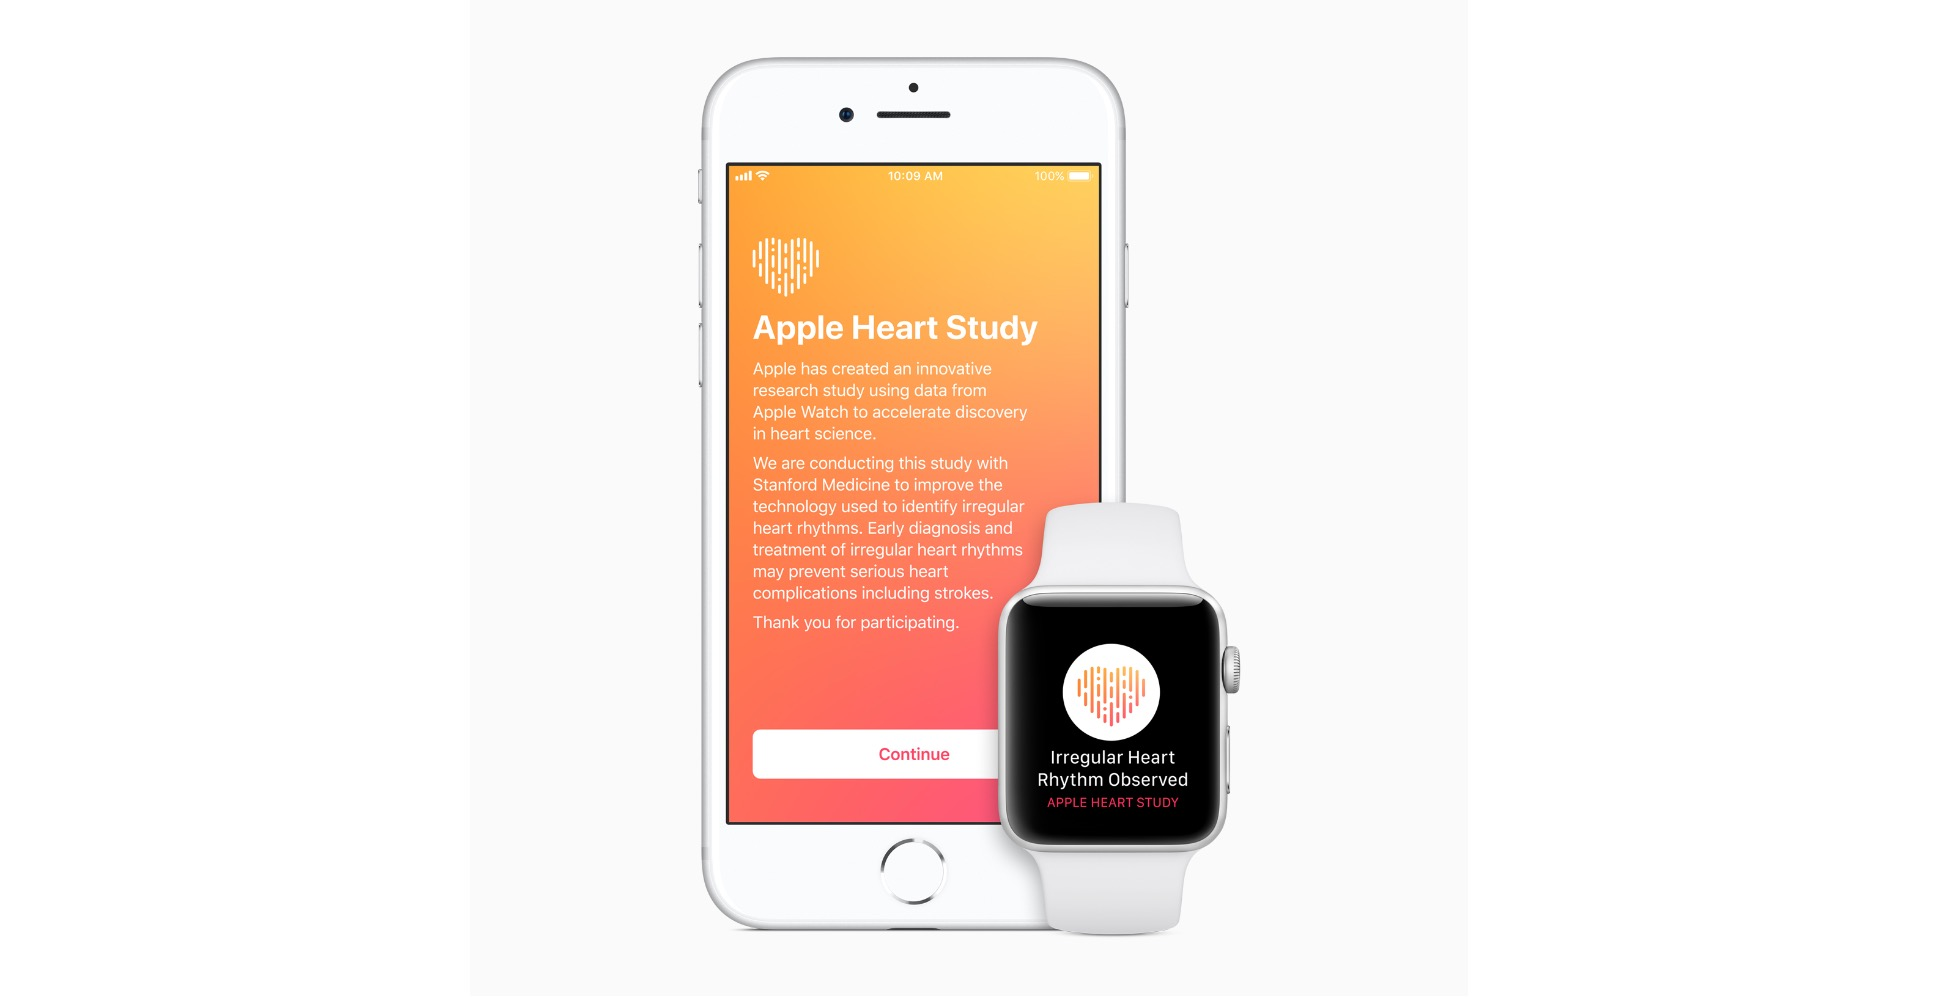 Apple Watch can detect irregular heartbeat, study finds